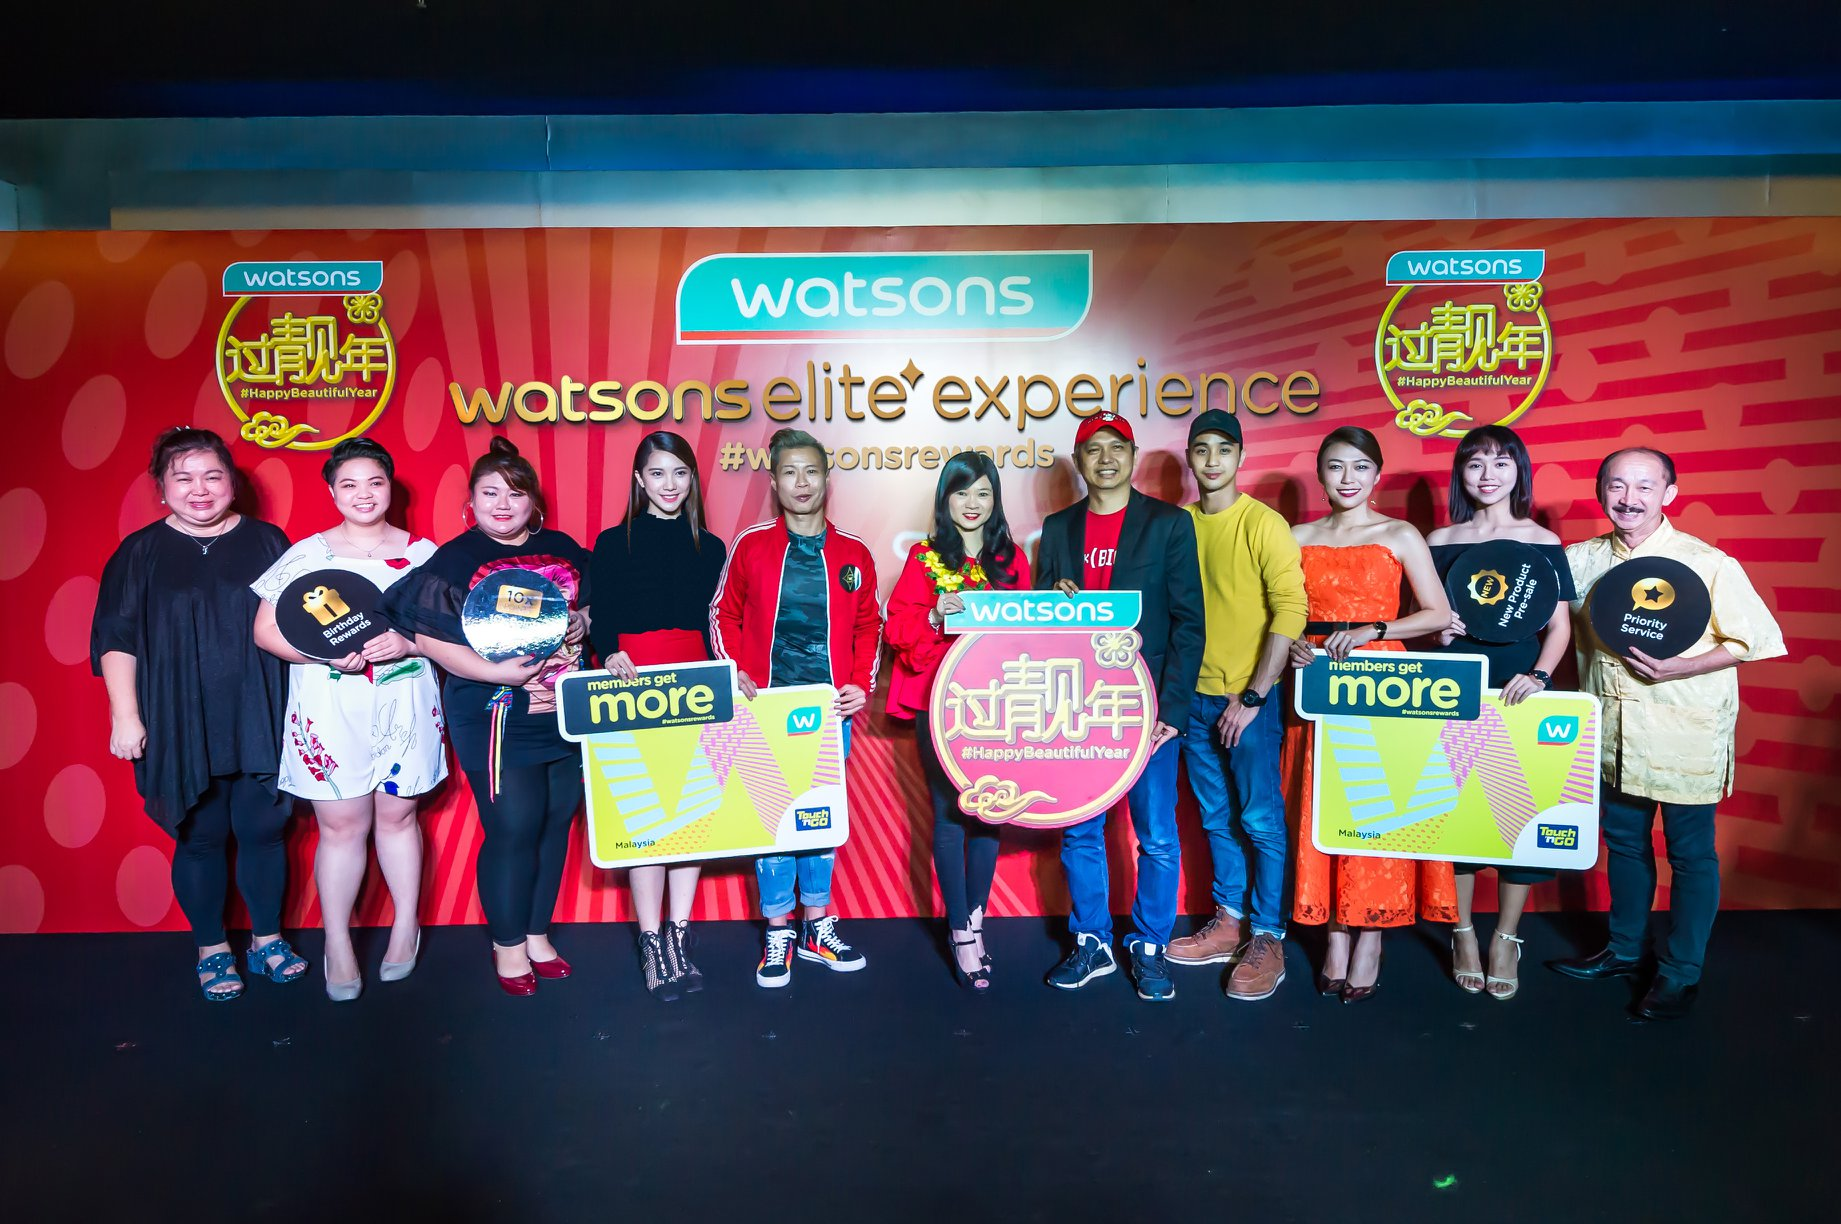 Image from Watsons Malaysia/Facebook